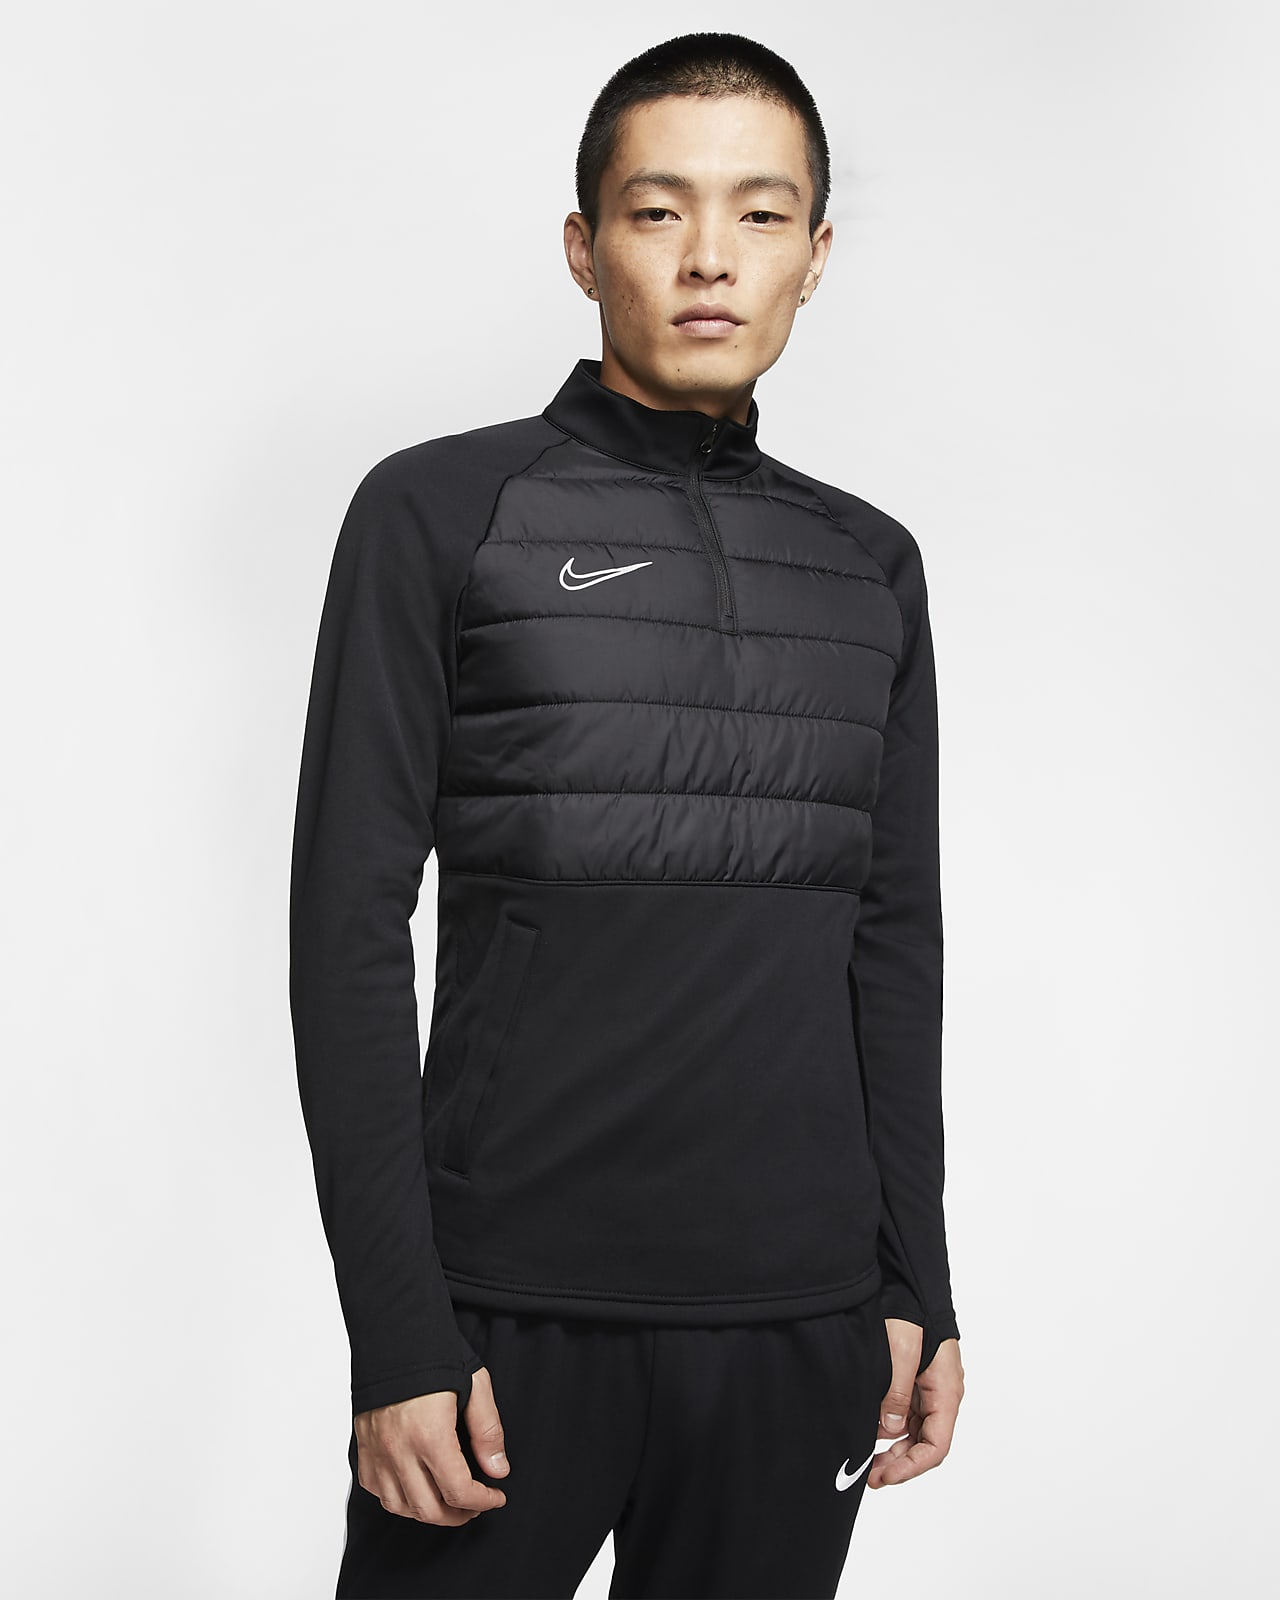 Nike Dri-FIT Academy Winter Warrior Men's Soccer Drill Top